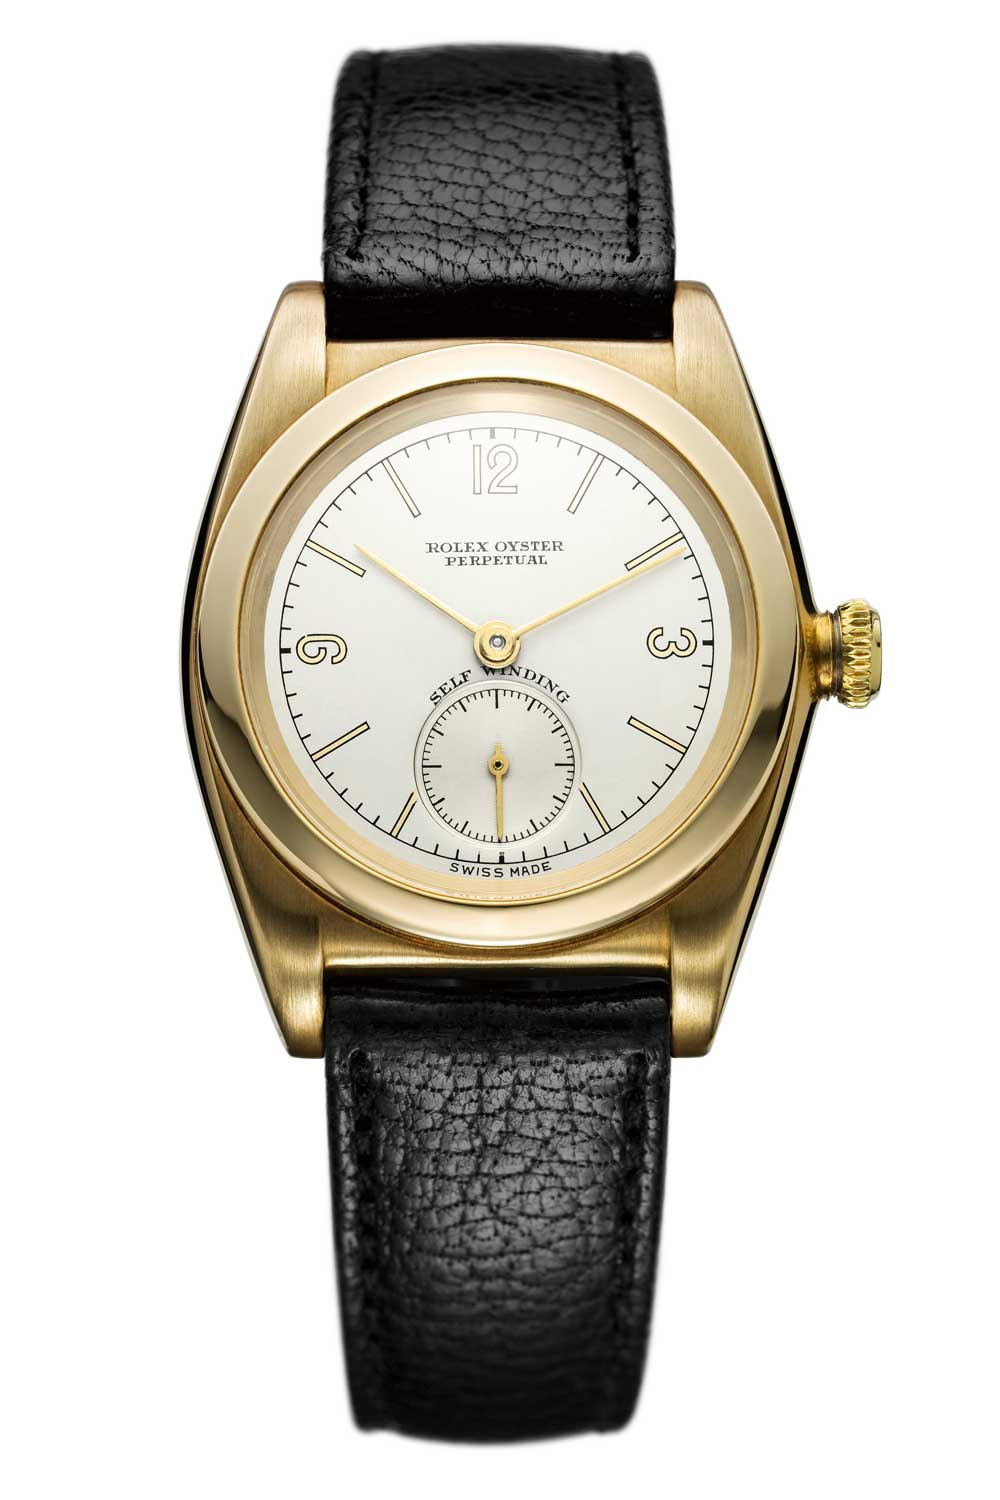 The first Oyster Perpetual watch with automatic winding in 1931